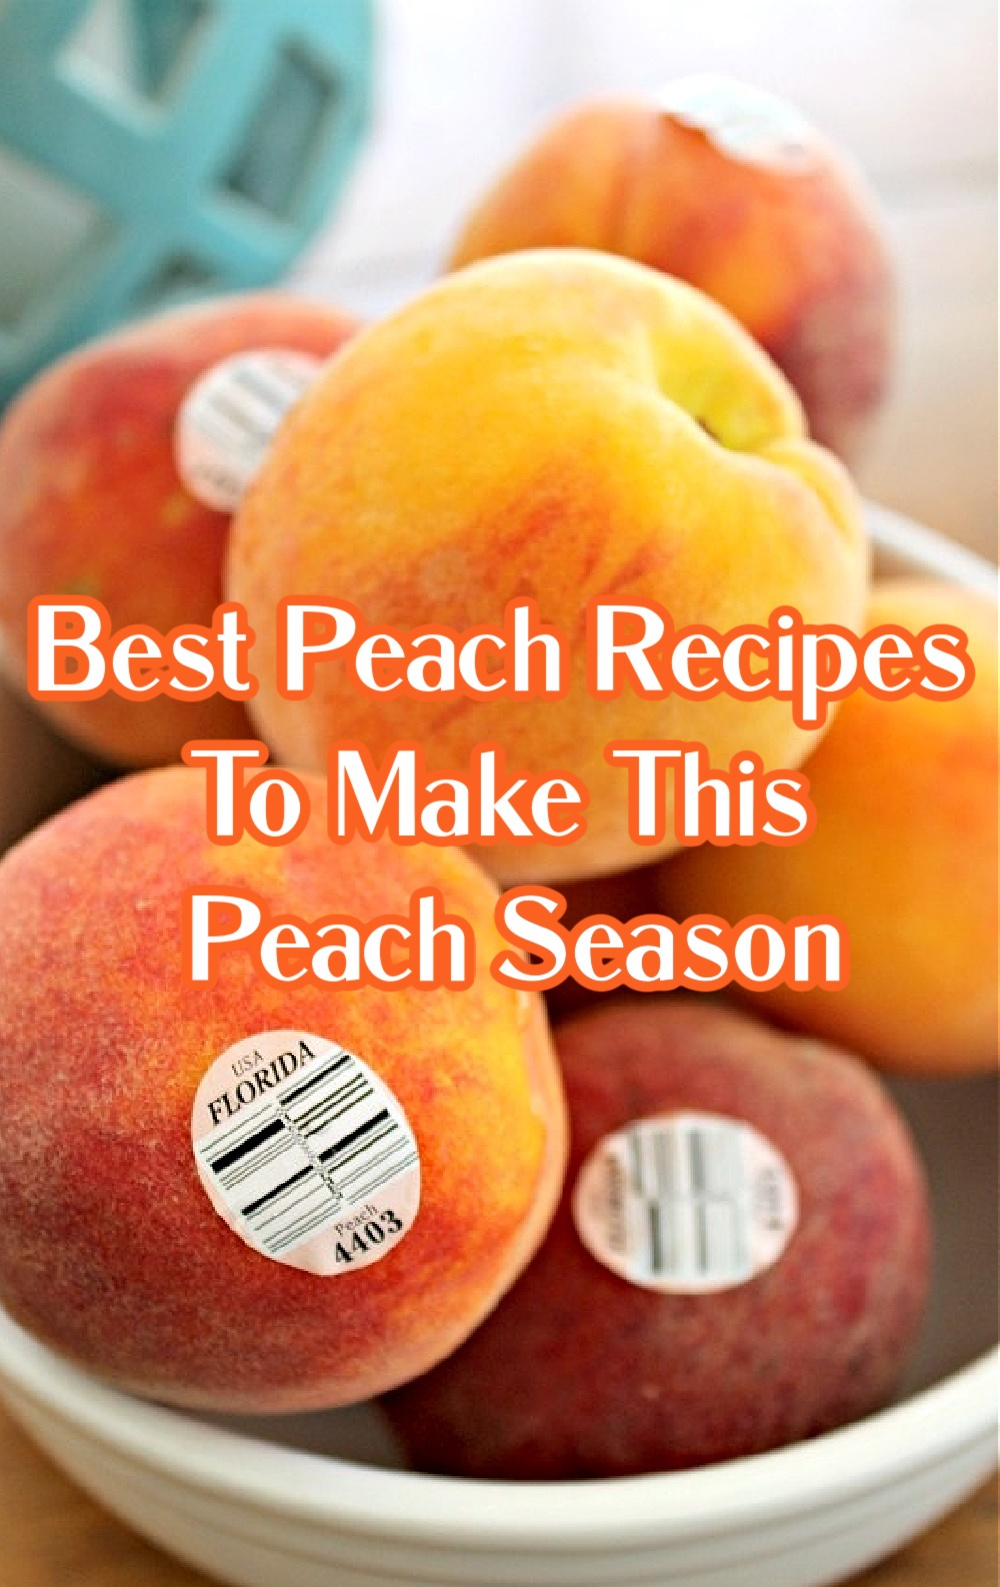 Best Florida Peach Recipes To Make This Florida Peach Season